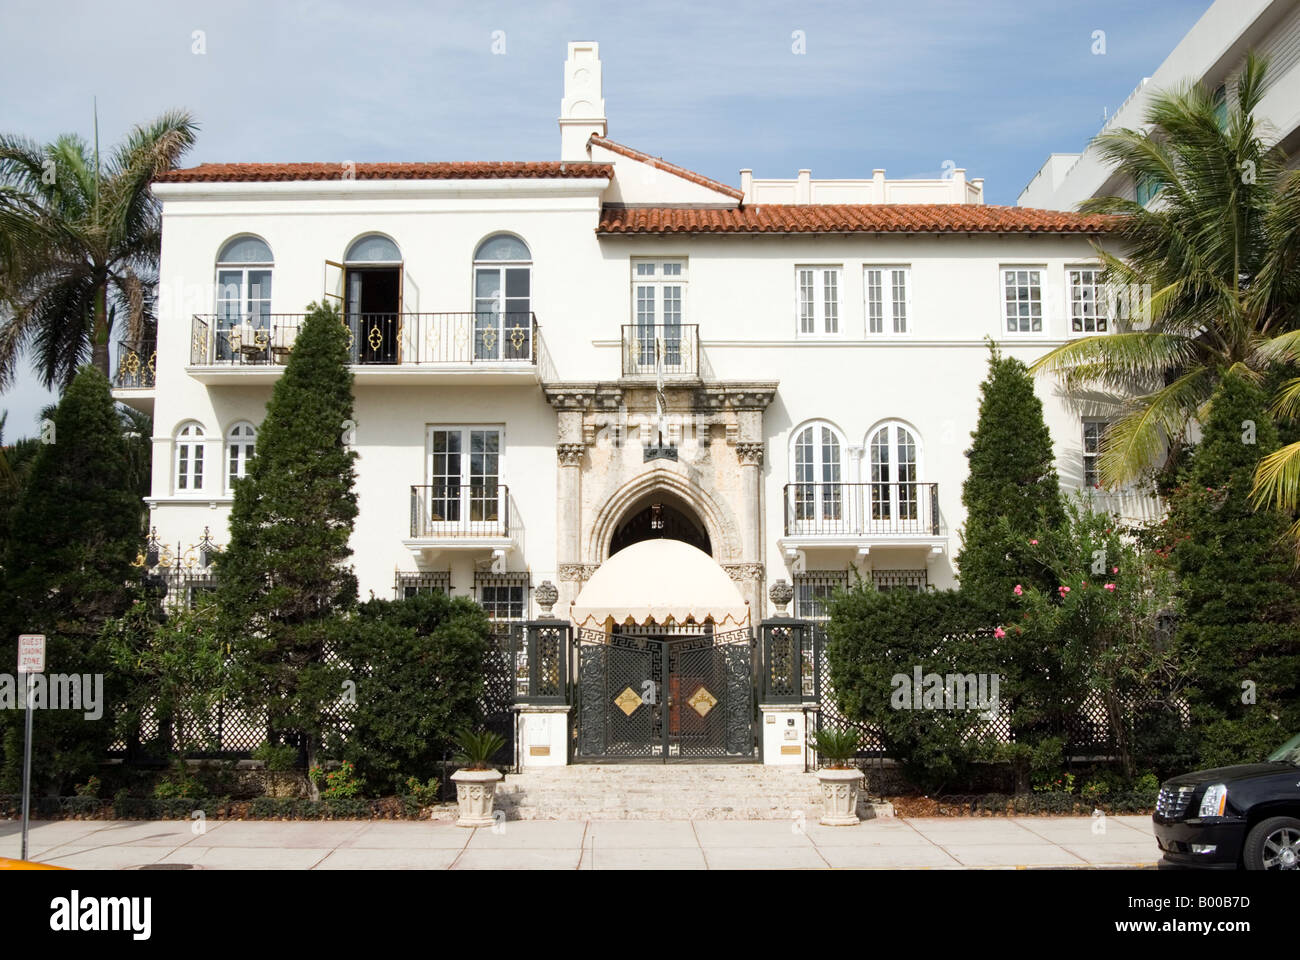 Versace Home Miami casa casuarina the former home of gianni versace on drive is